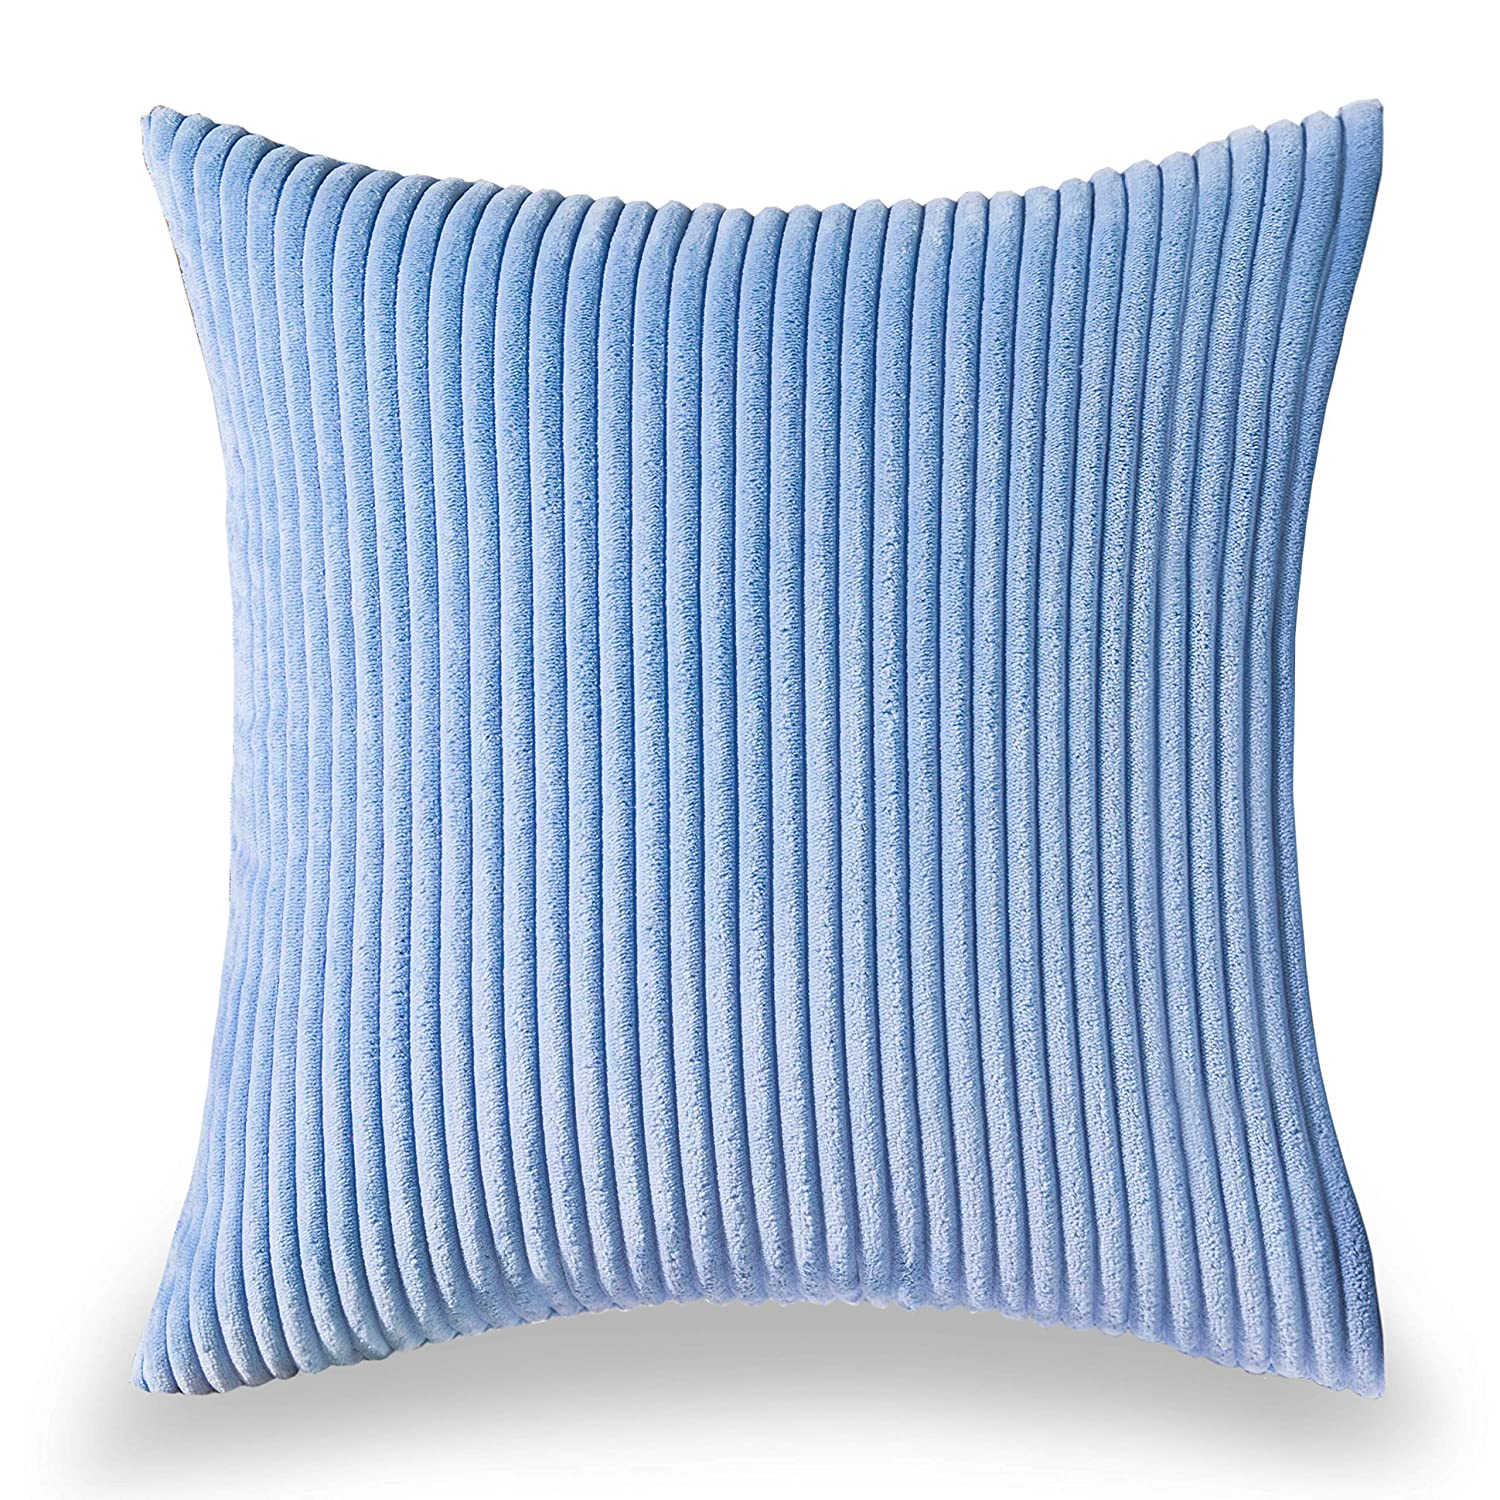 HOME BRILLIANT Solid Winter Halloween Christmas Decorative Accent Pillow Case Striped Corduroy Plush Velvet Cushion Cover Sofa, Cream Cheese, 18x18-inch (45cm) HBCRDCC101